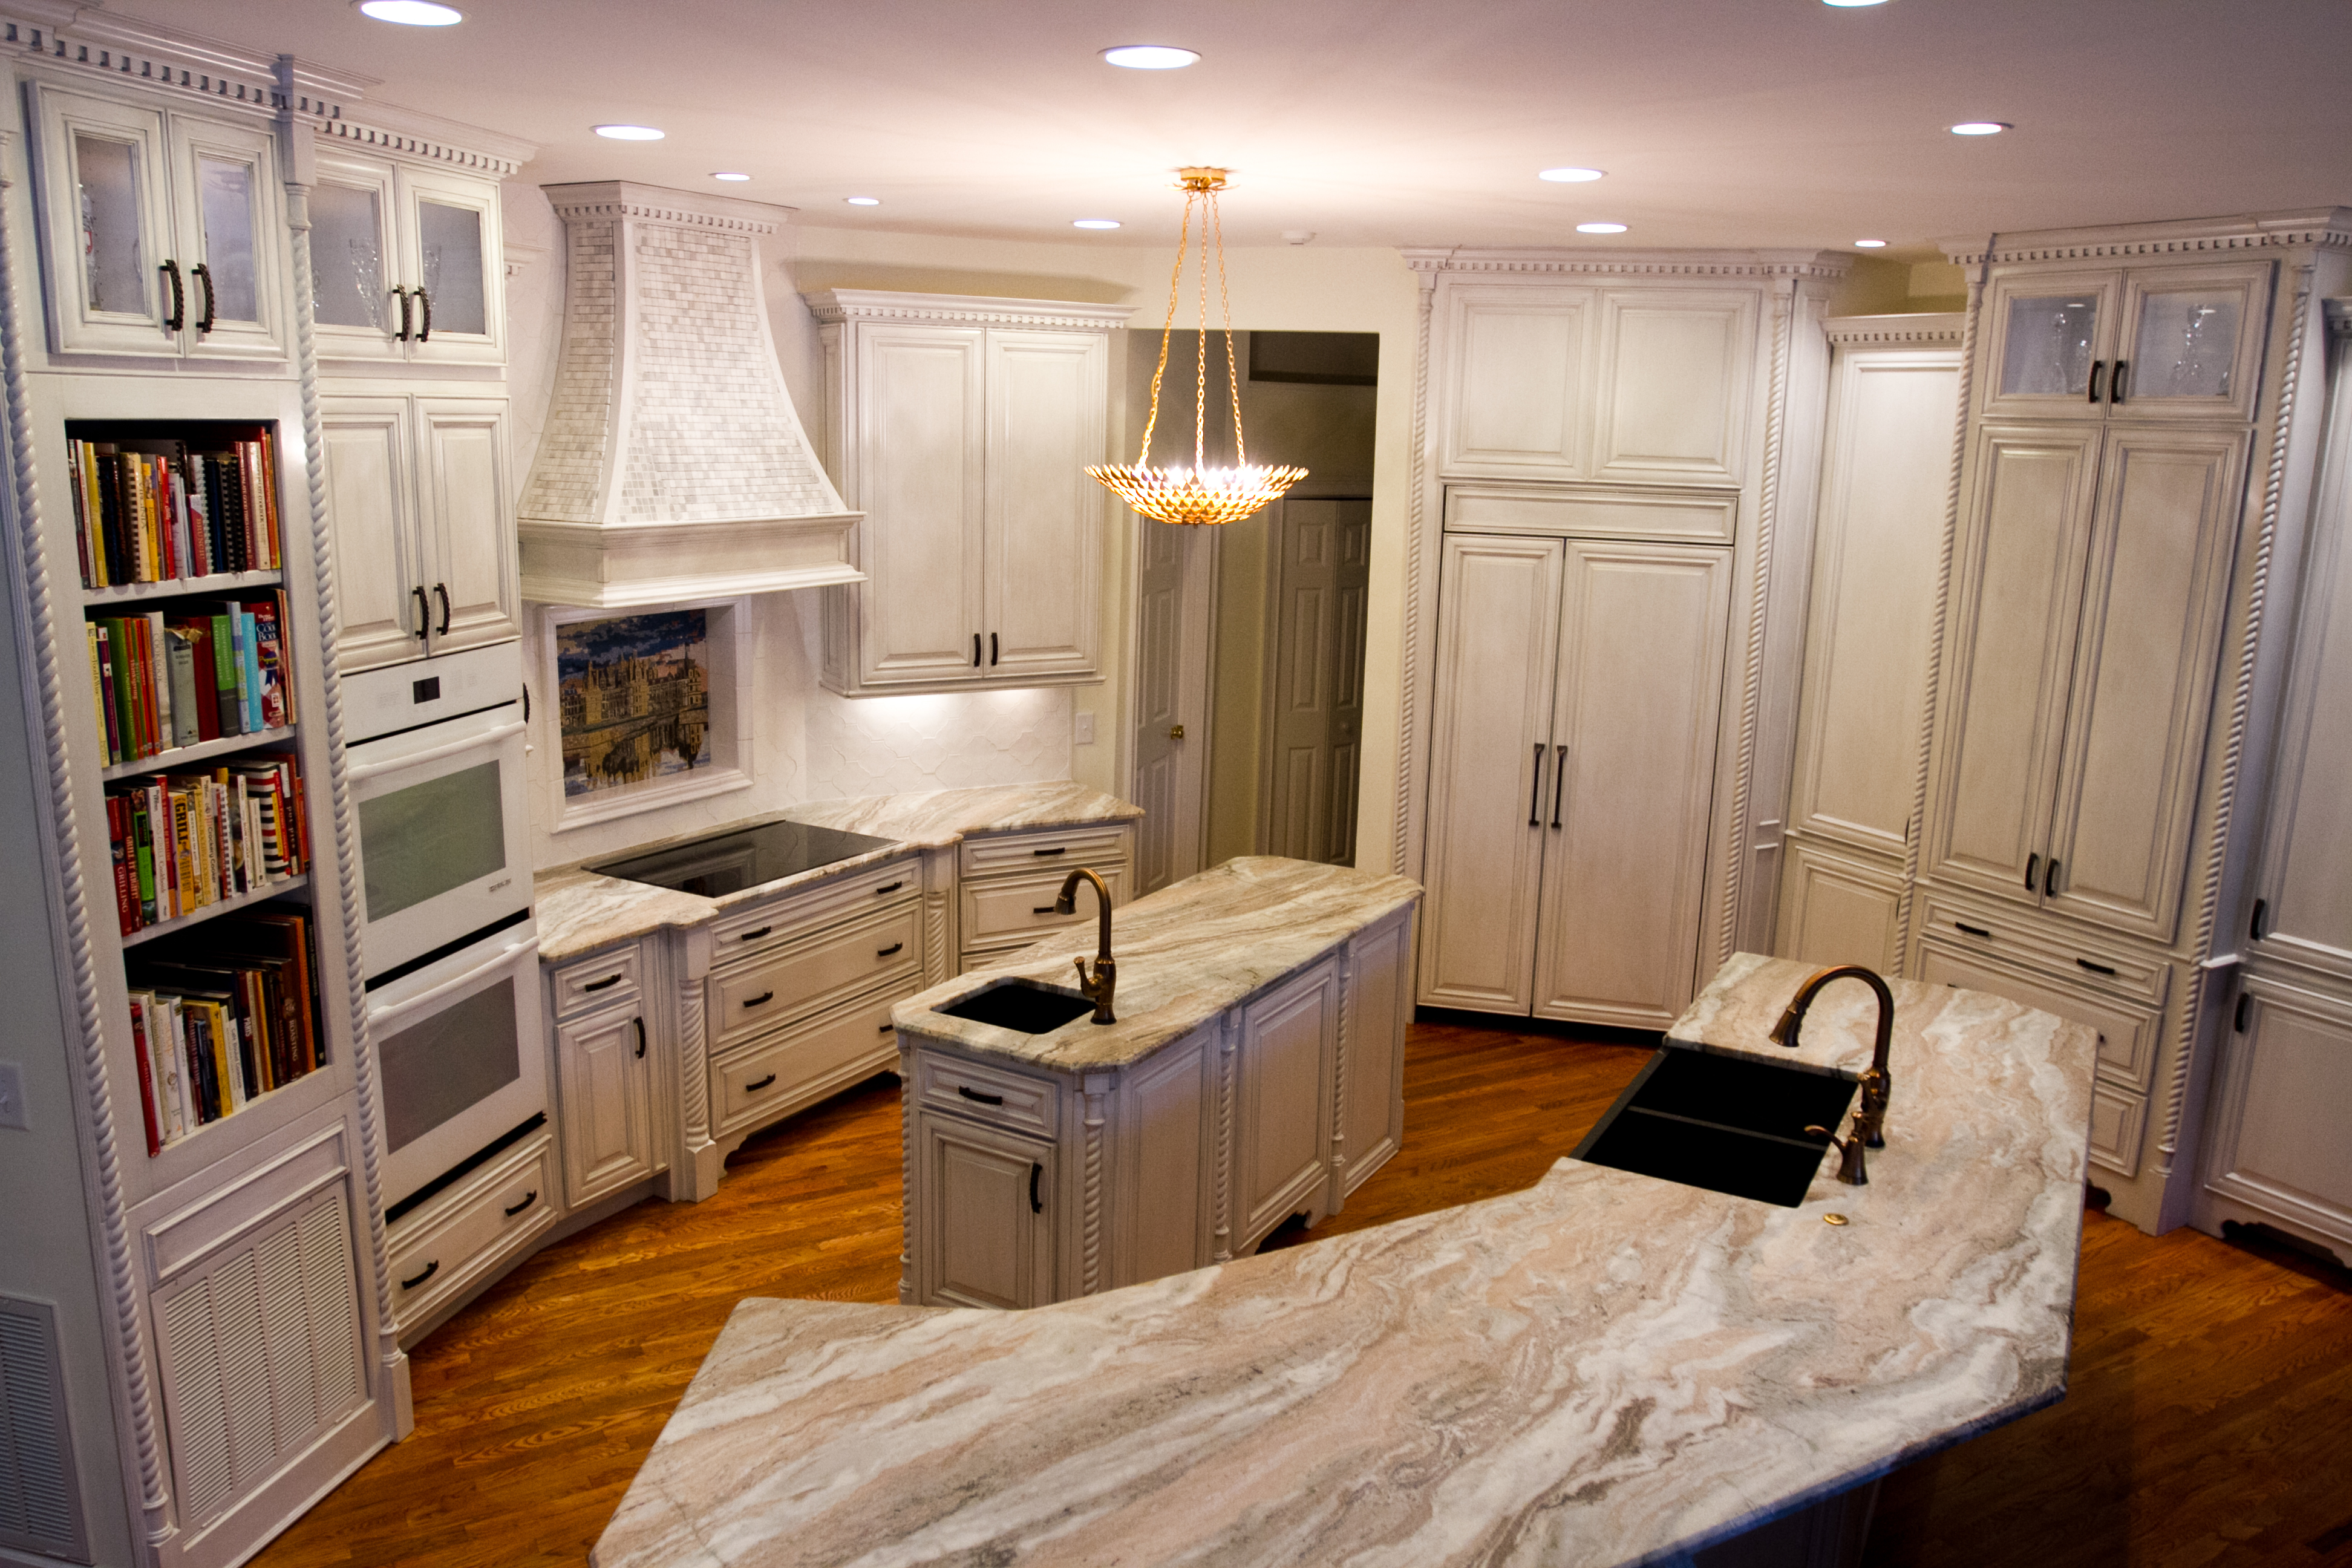 L M Interior Designs   Home Remodeling  Cabinets  Furniture  Renovation Touch of Tuscany